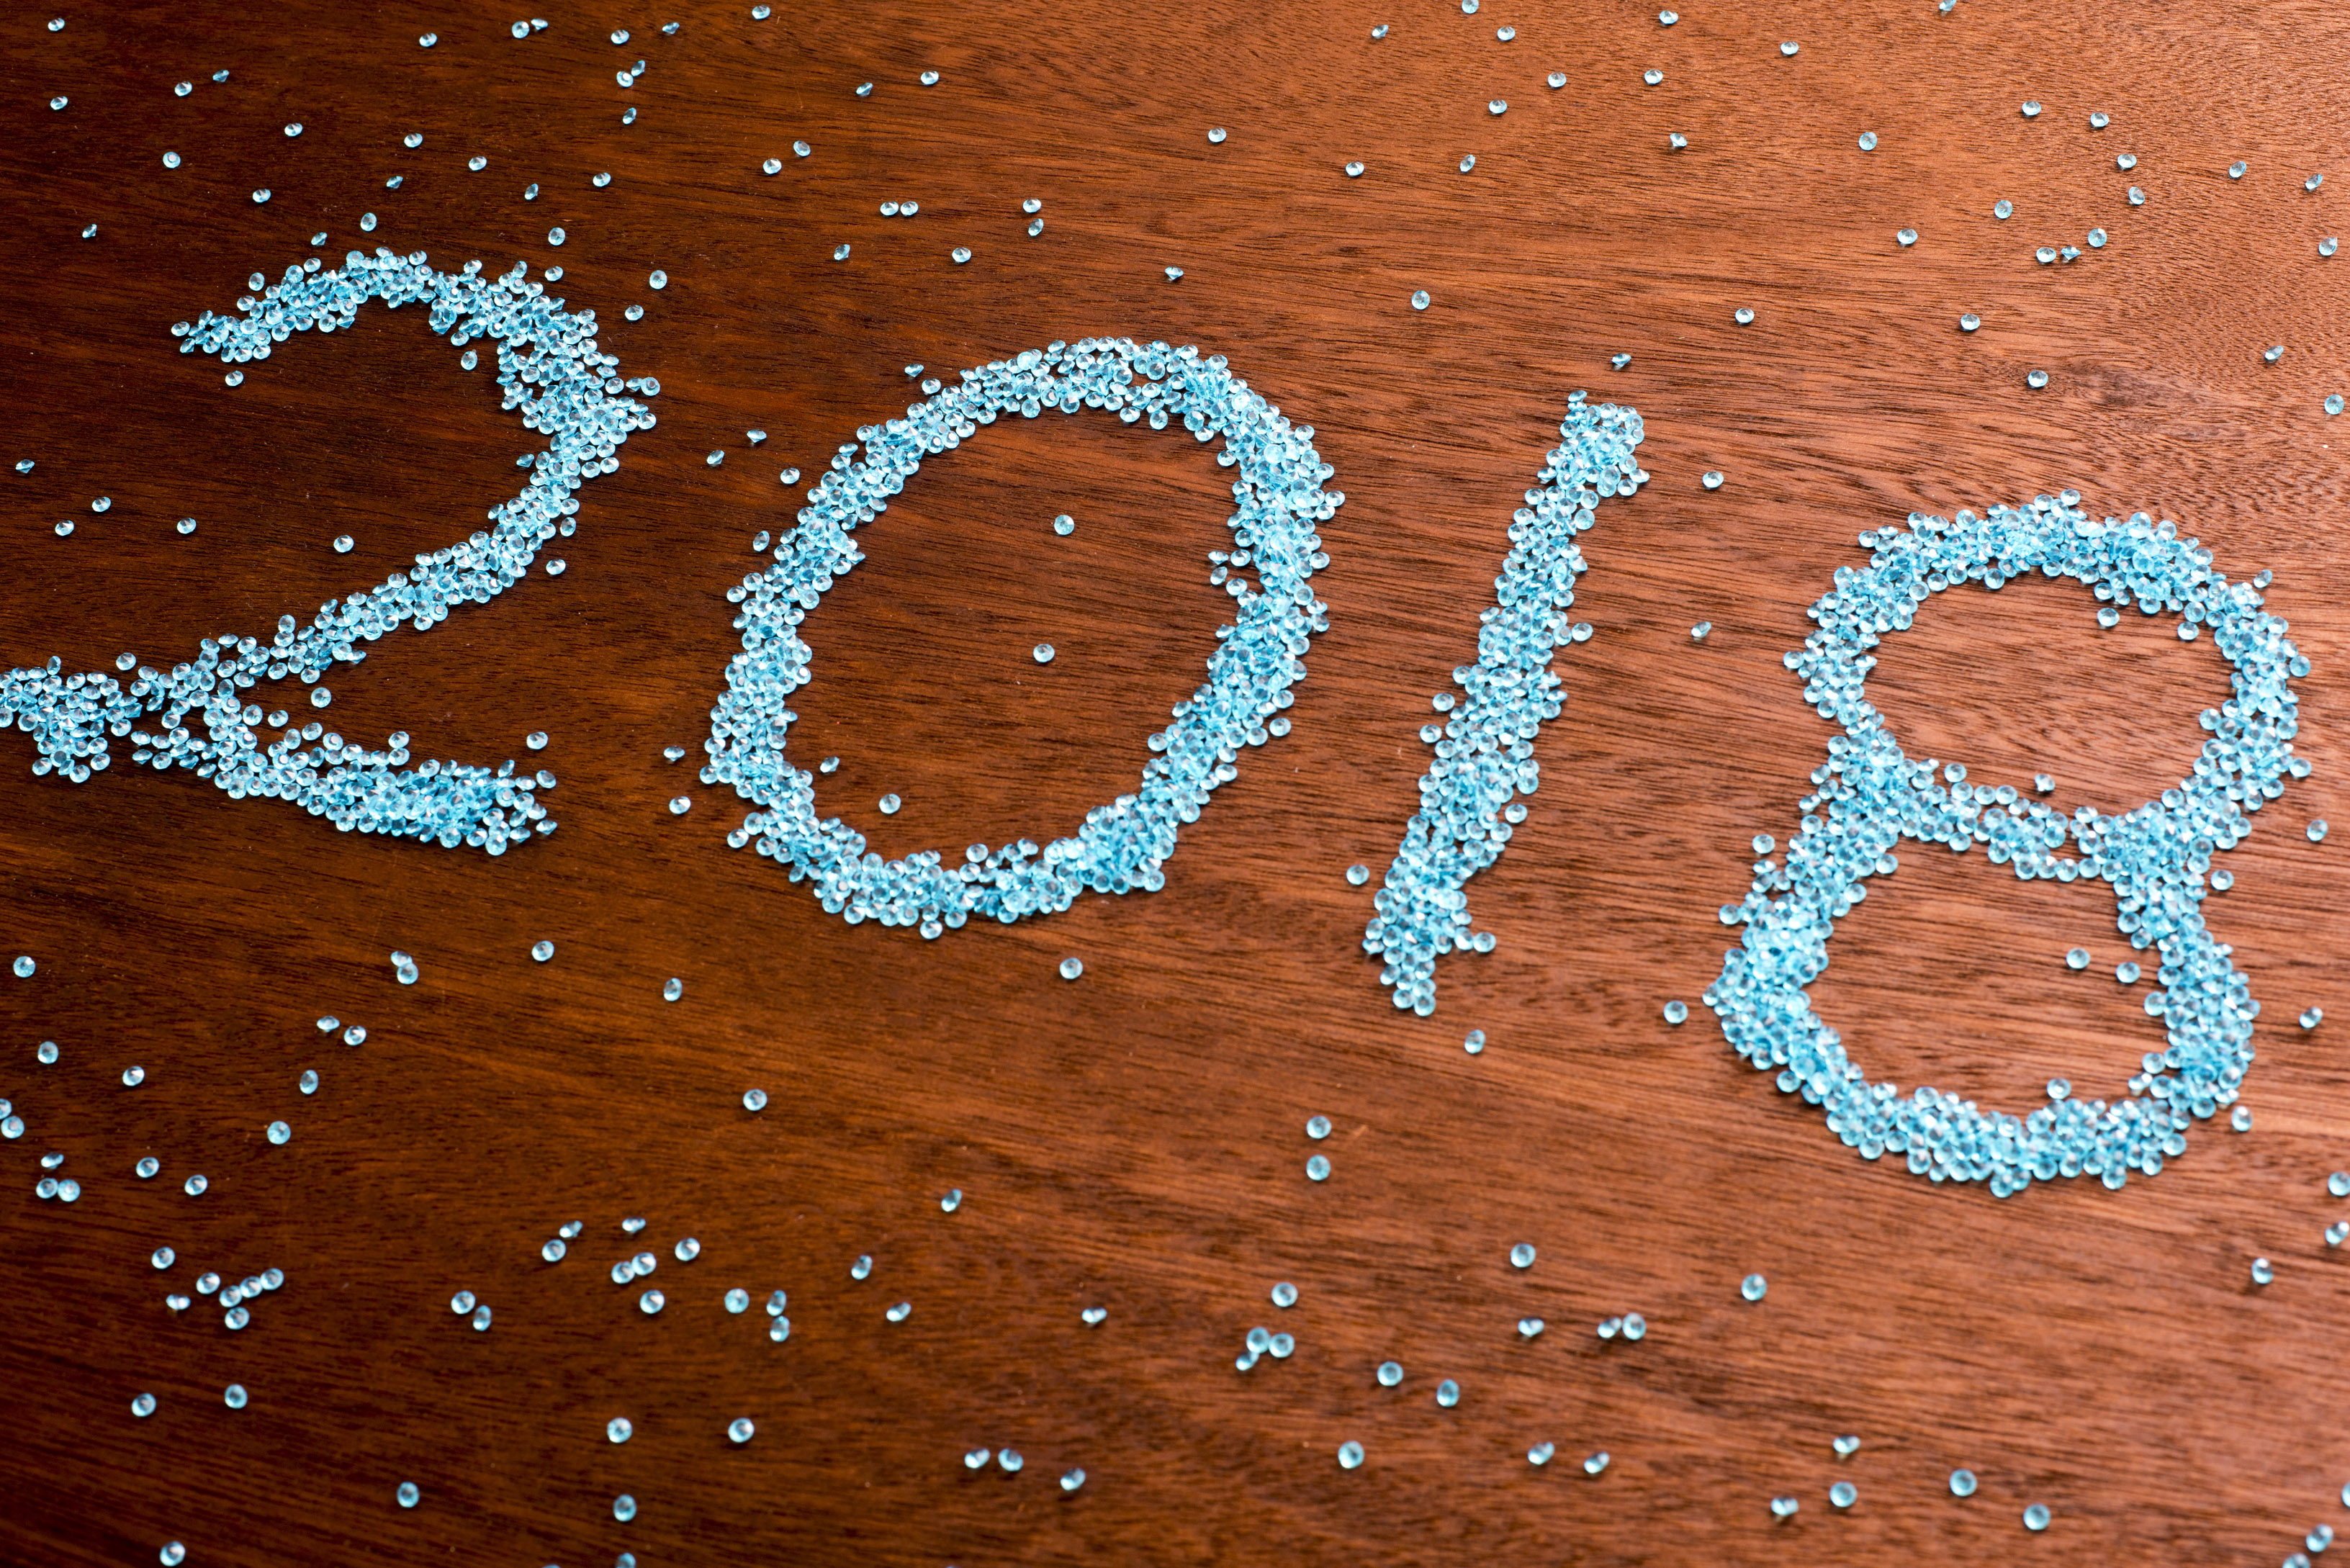 2018 New Year date in blue sequins on wood for a festive celebration of the holiday season in an angle view with copy space